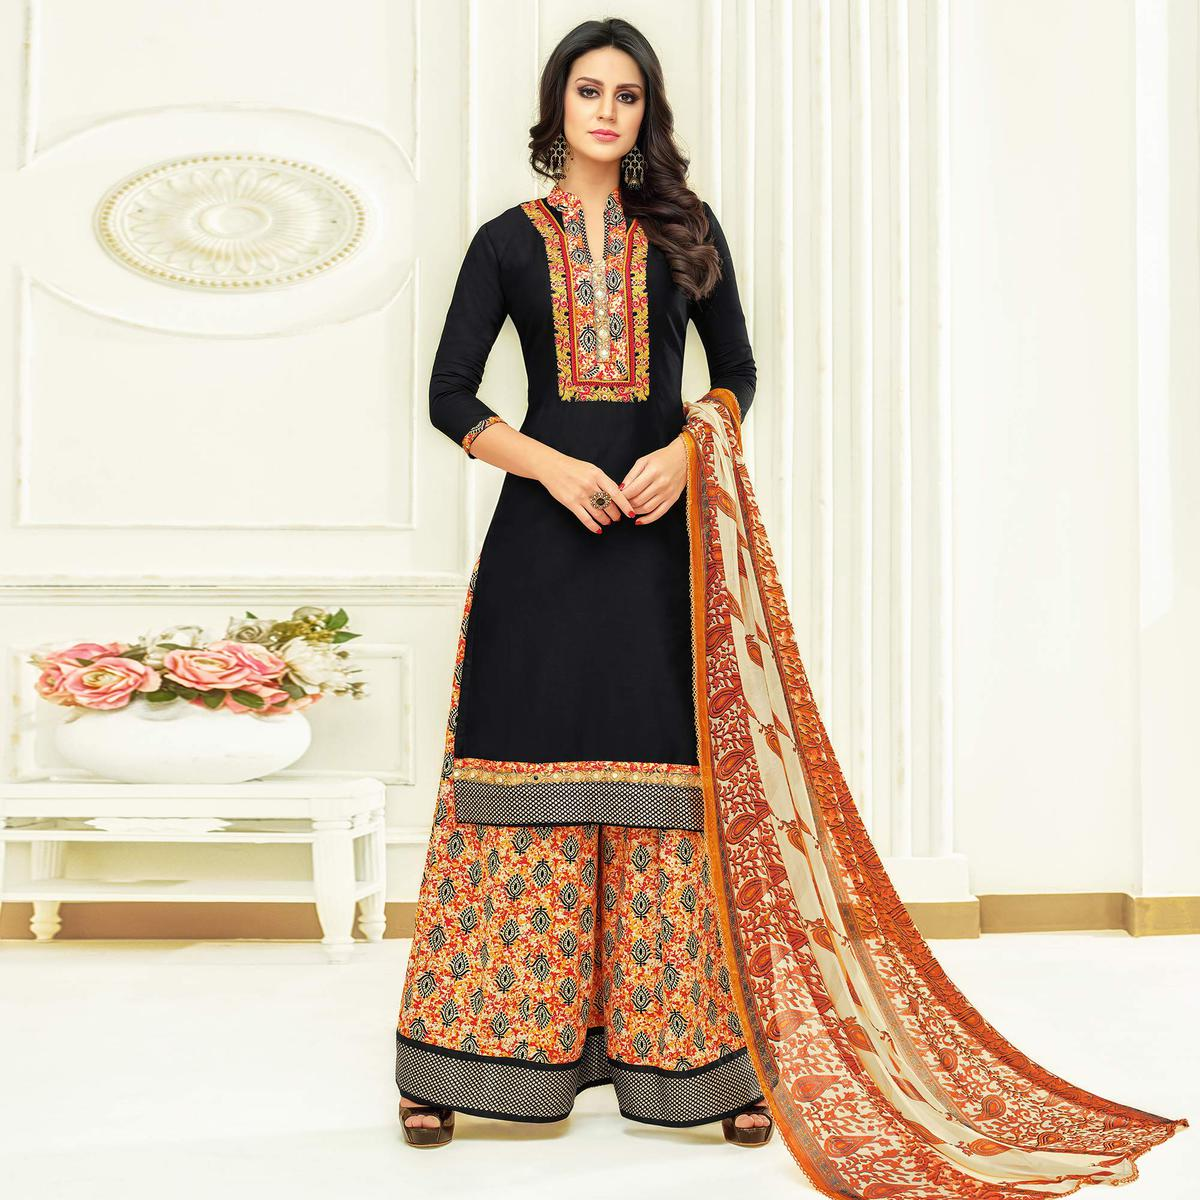 54fa41f32b Buy Flaunt Black Colored Partywear Printed Satin Palazzo Suit For womens  online India, Best Prices, Reviews - Peachmode